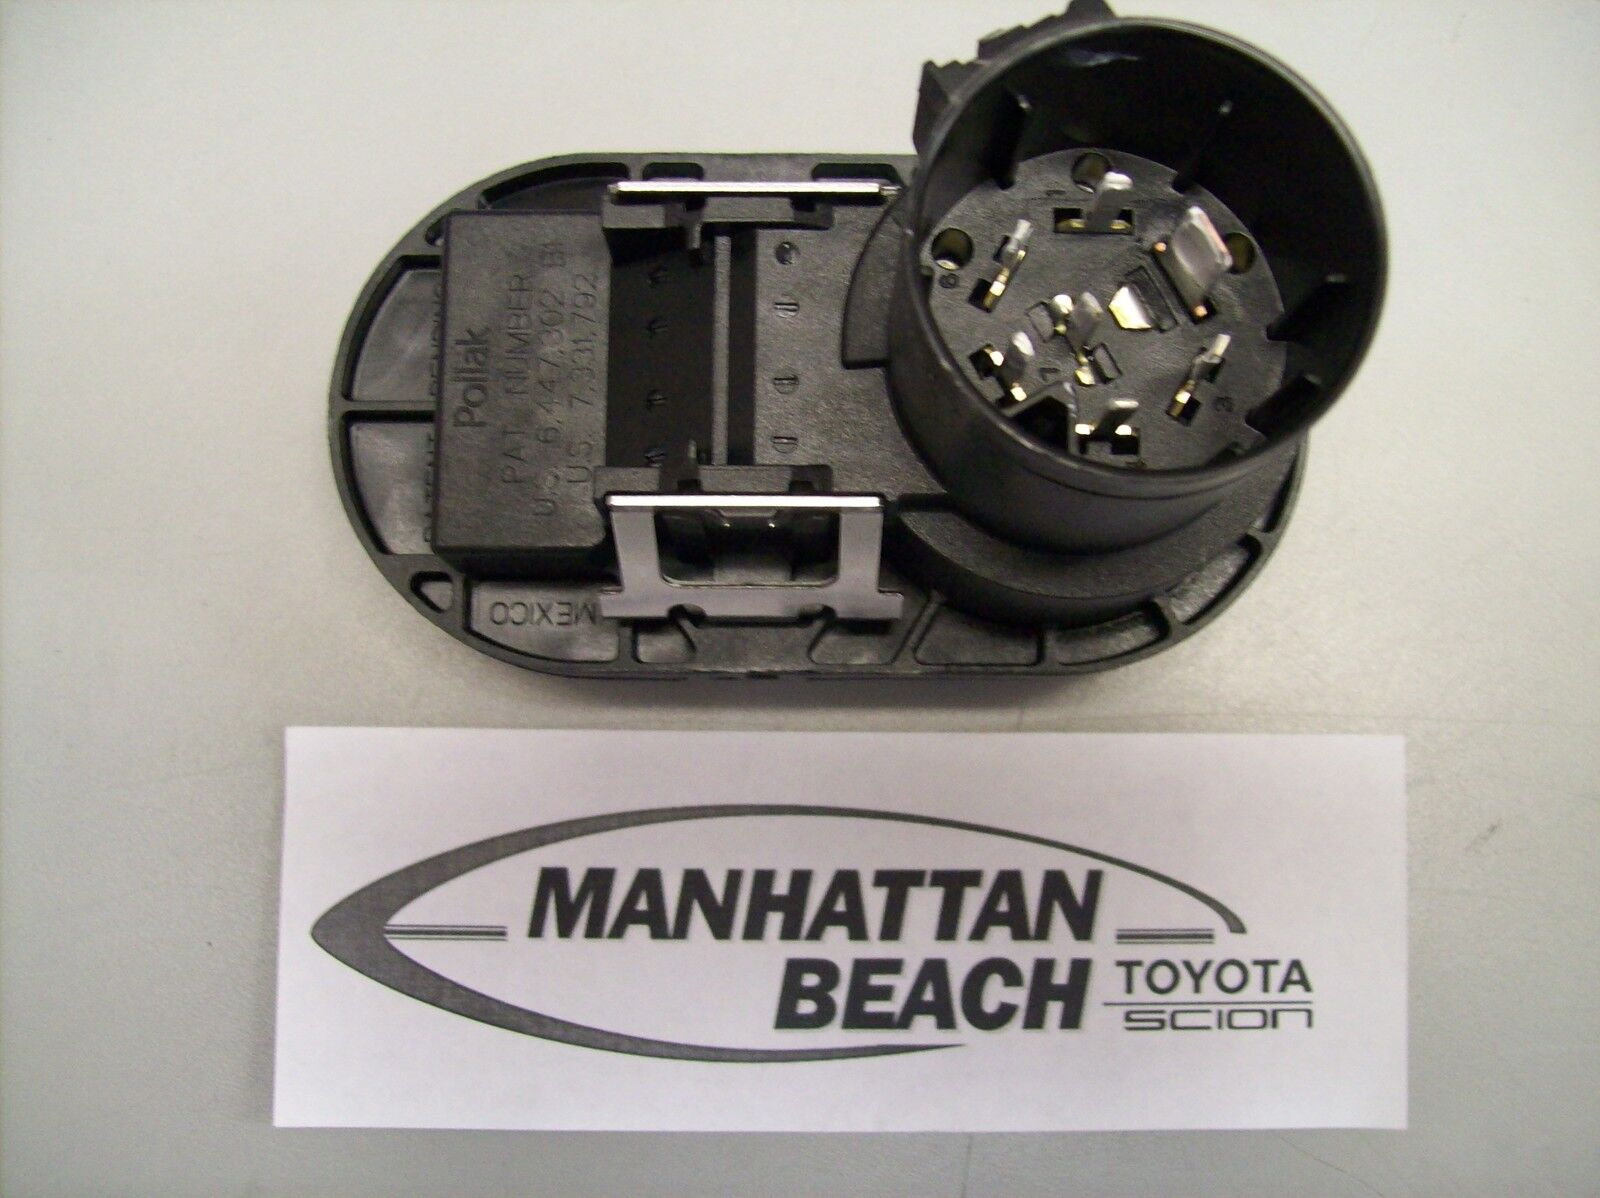 2016 2017 tacoma tow hitch wire harness connector 7pin 4pin plug 2016 2017 tacoma tow hitch wire harness connector 7pin 4pin plug replacement 4 4 of 5